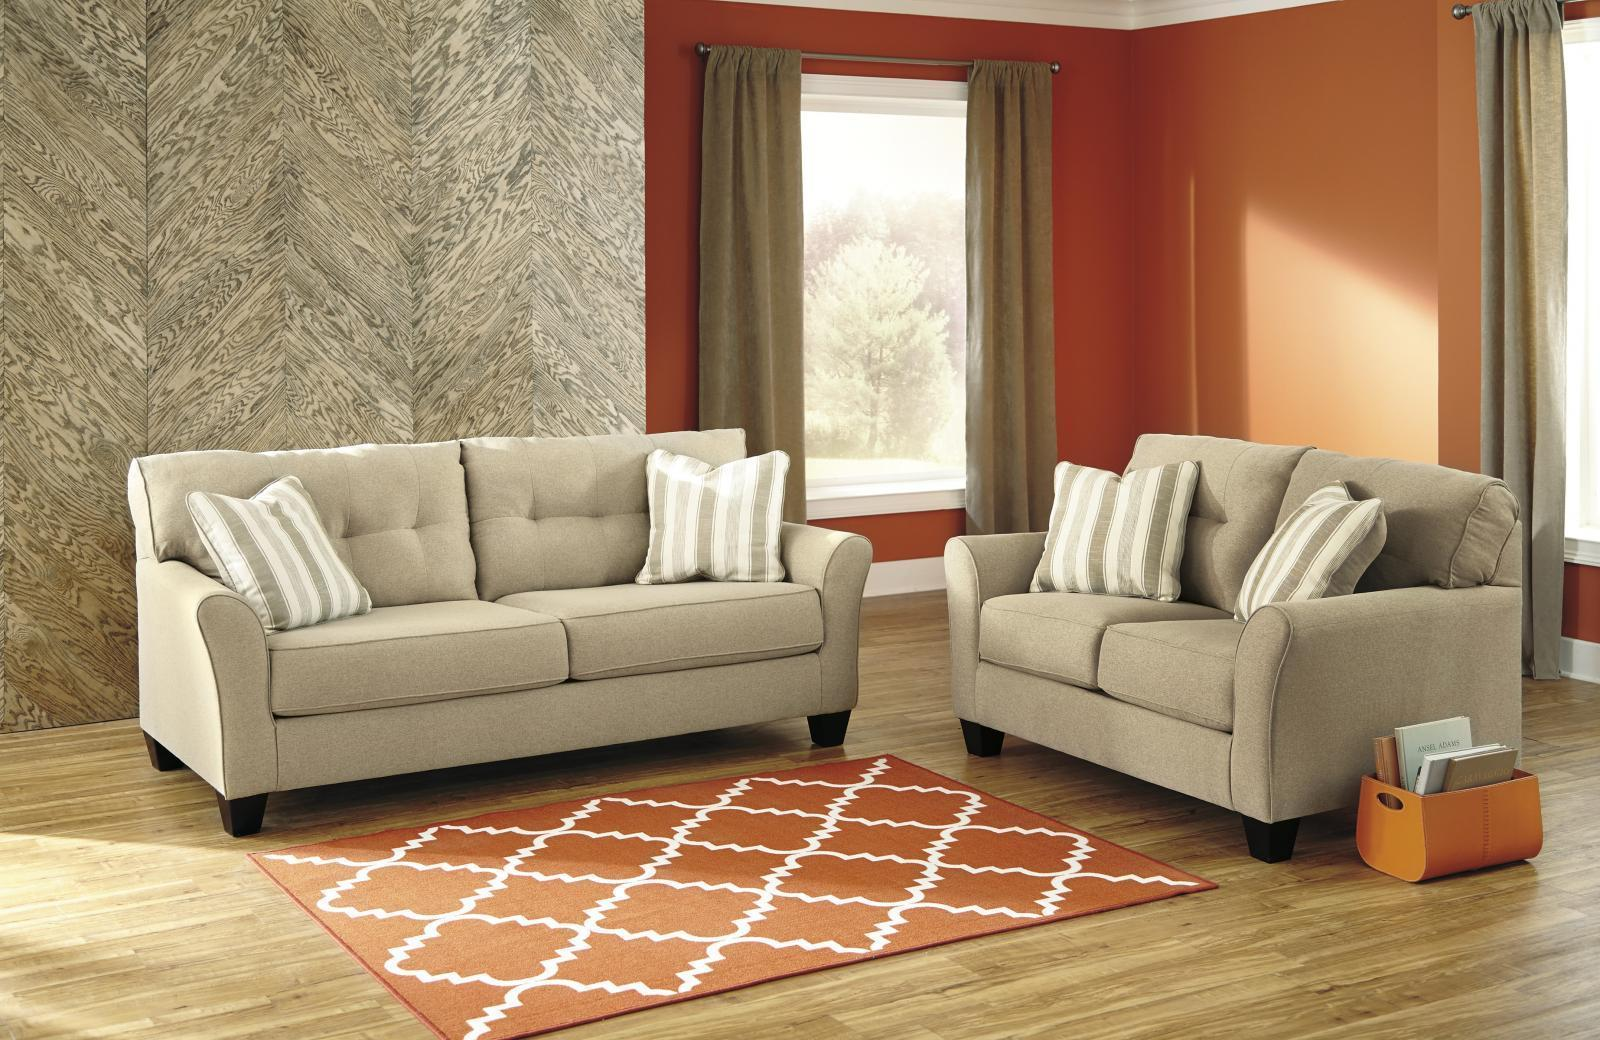 Ashley Laryn Living Room Set 2pcs in Khaki Upholstery Fabric Contemporary Style